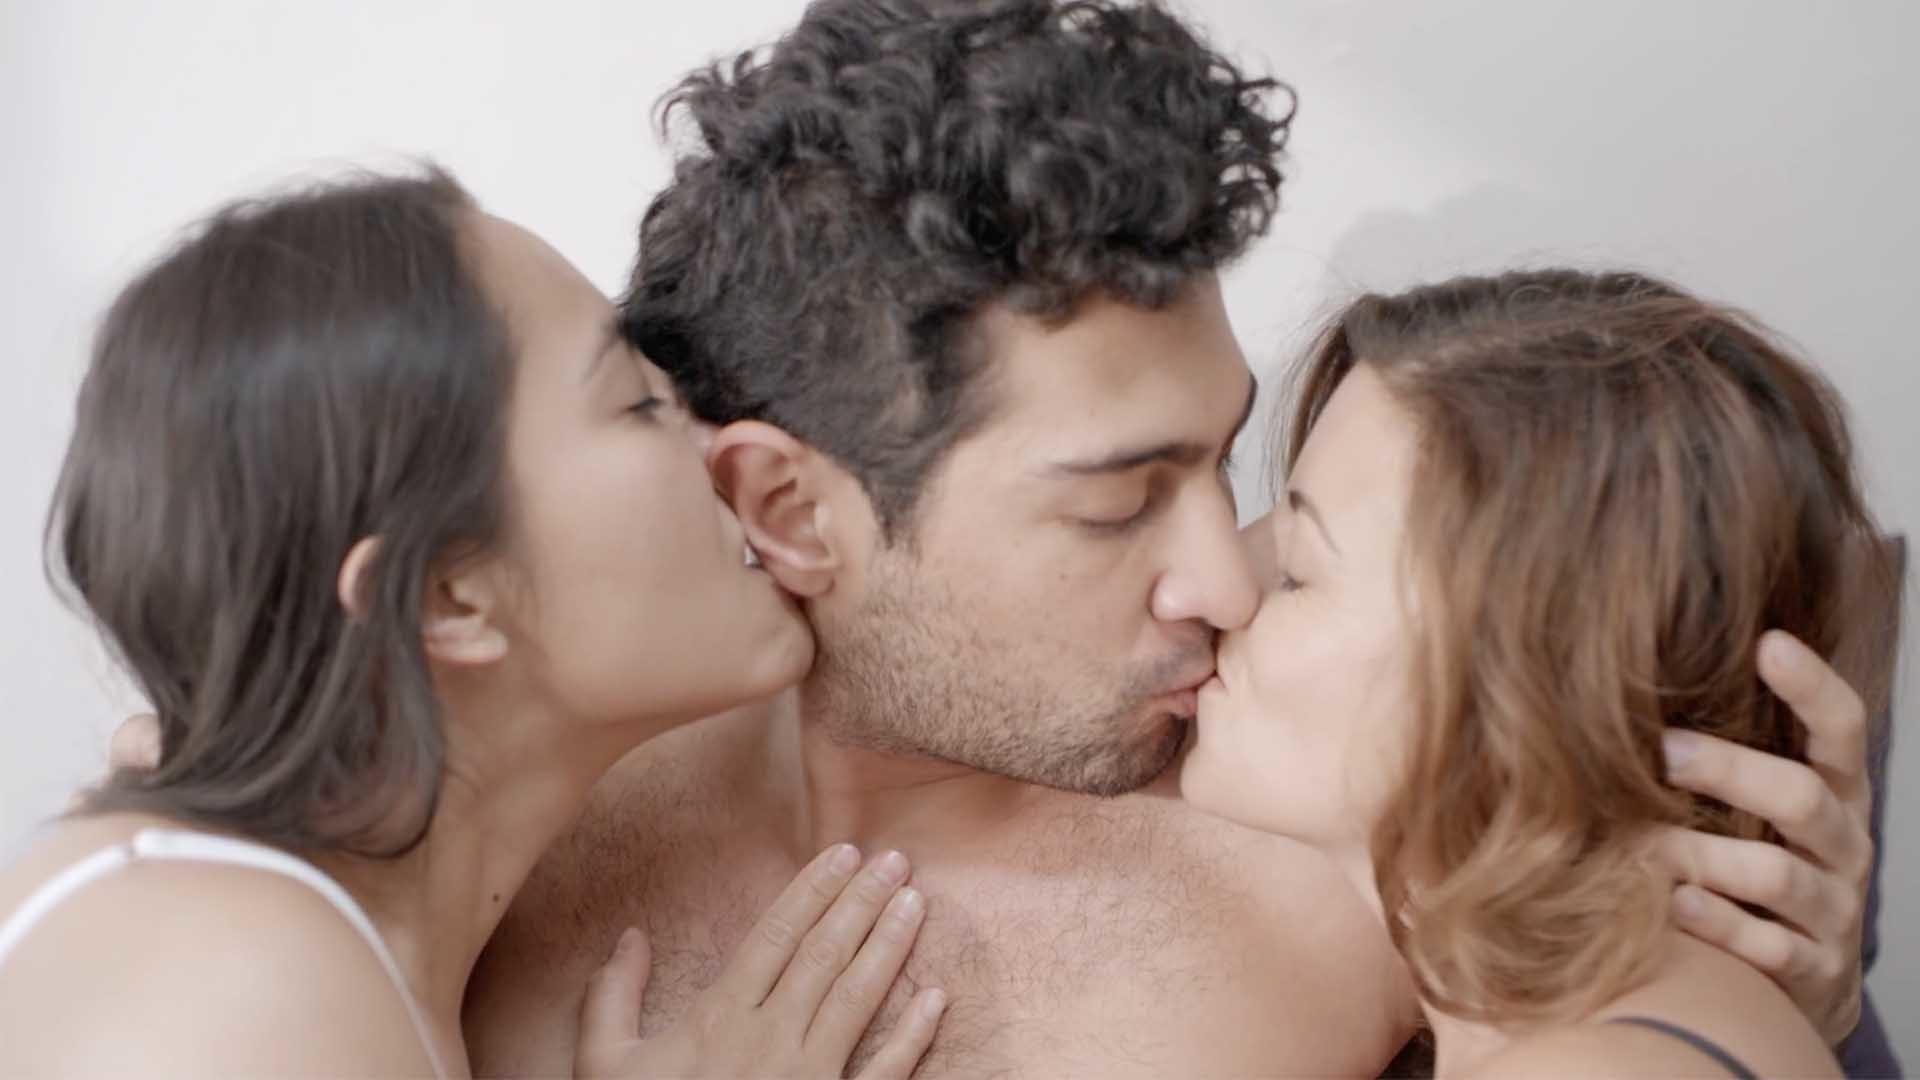 Threesome (Ménage à trois) by Martin Roman - Mexico Comedy Short Film |  Viddsee